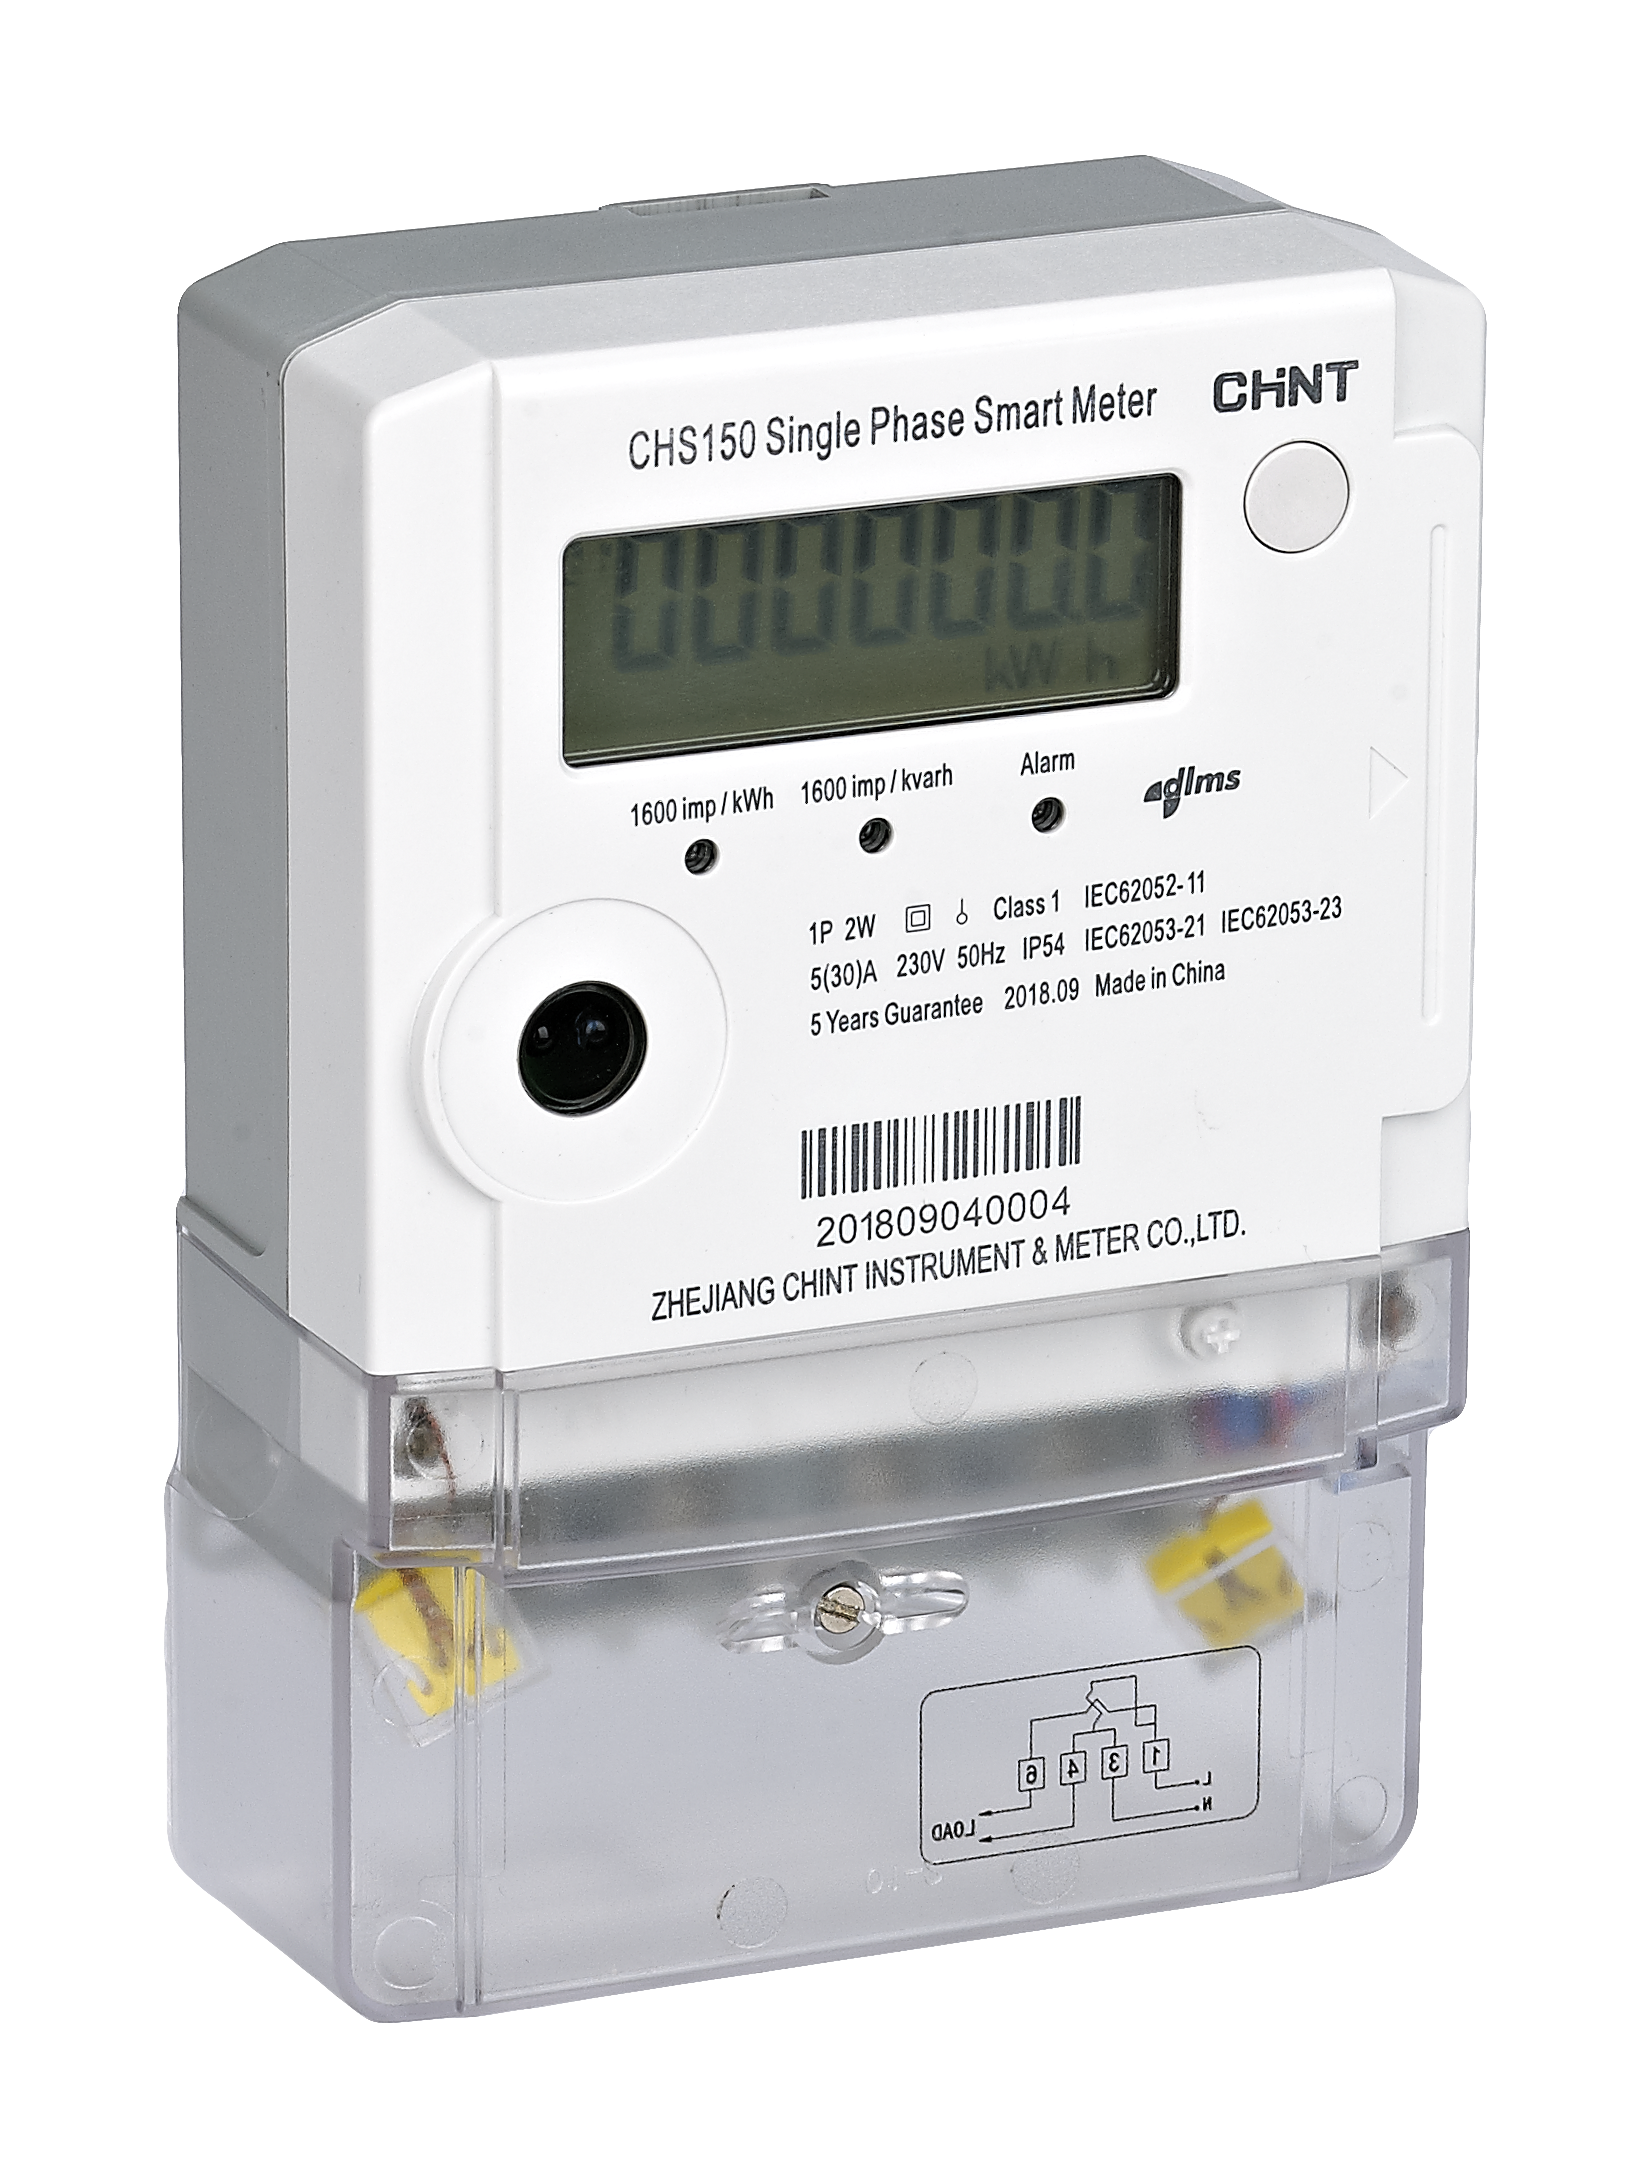 CHS150 Single Phase Smart Meter